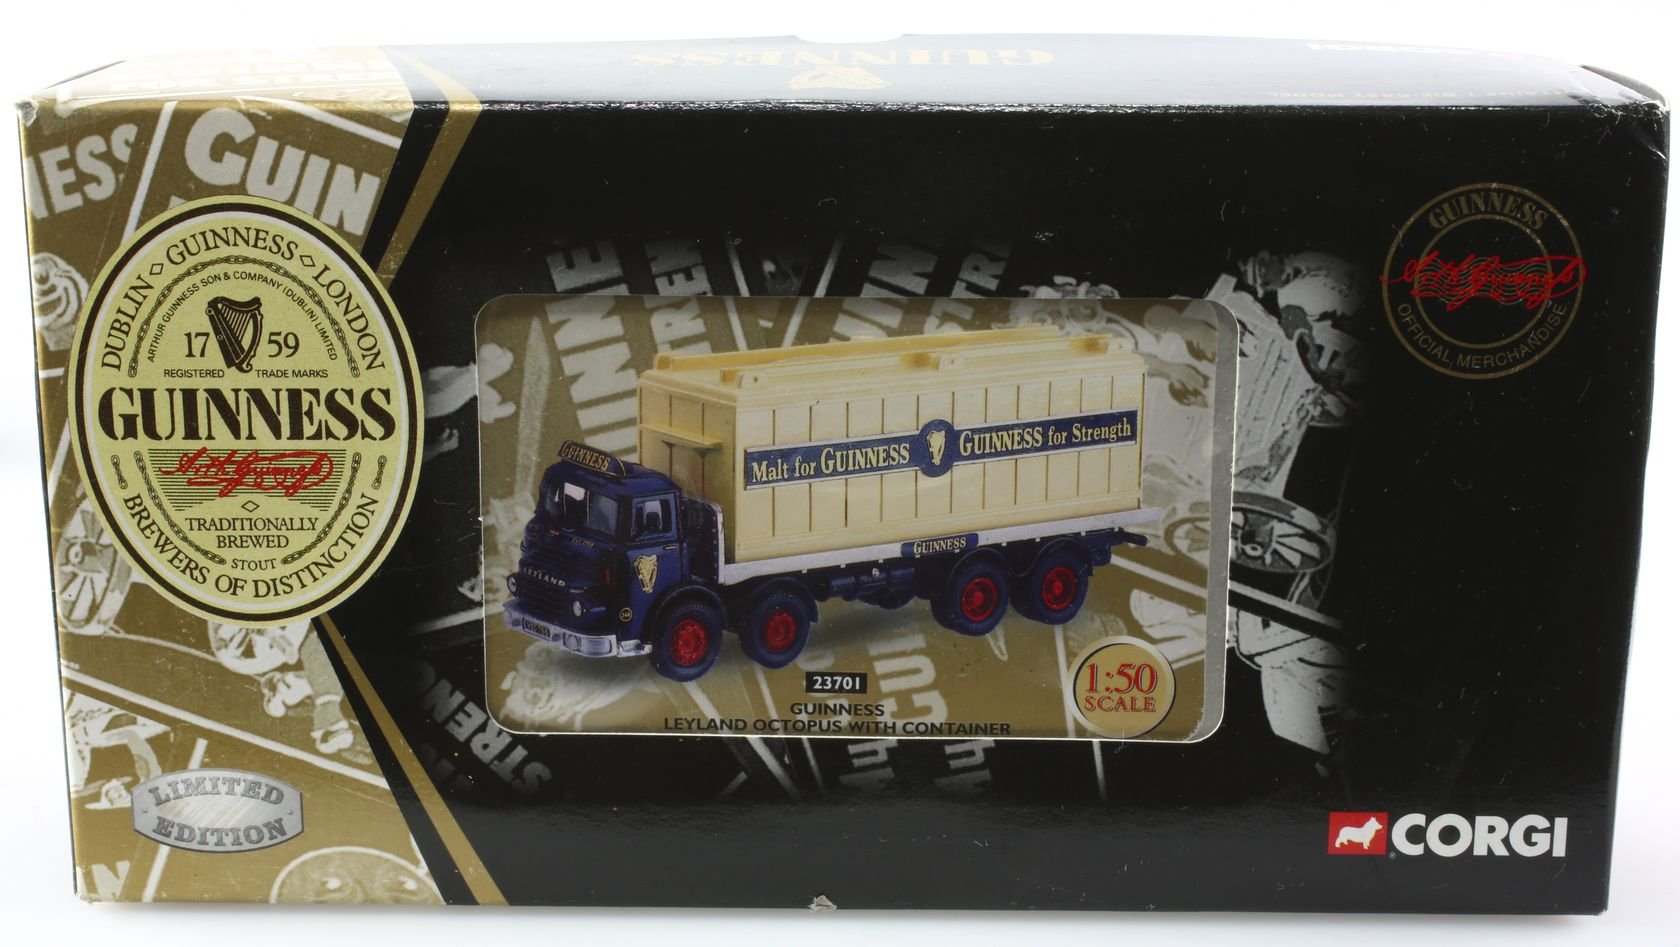 Leyland octopus avec container Guinness 1/50